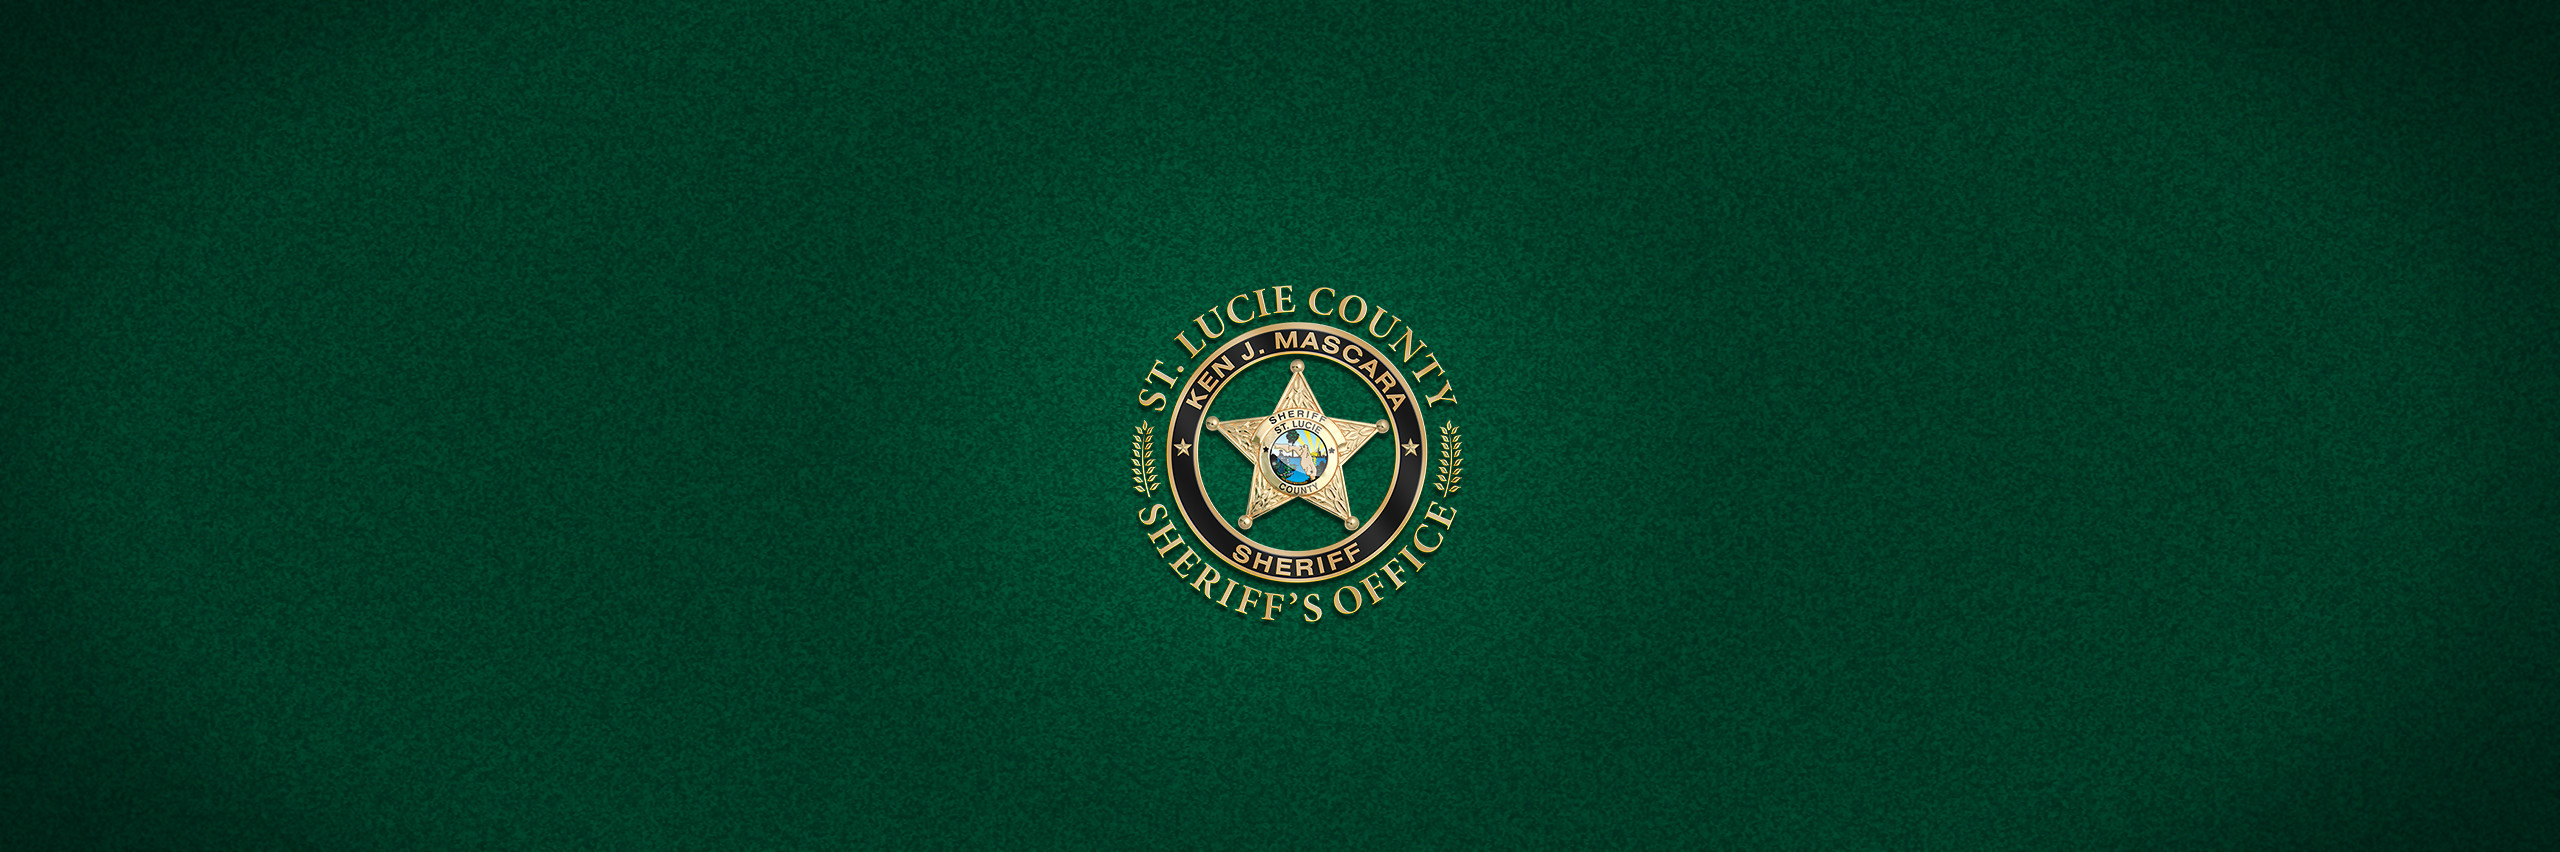 St. Lucie Sheriff's Office